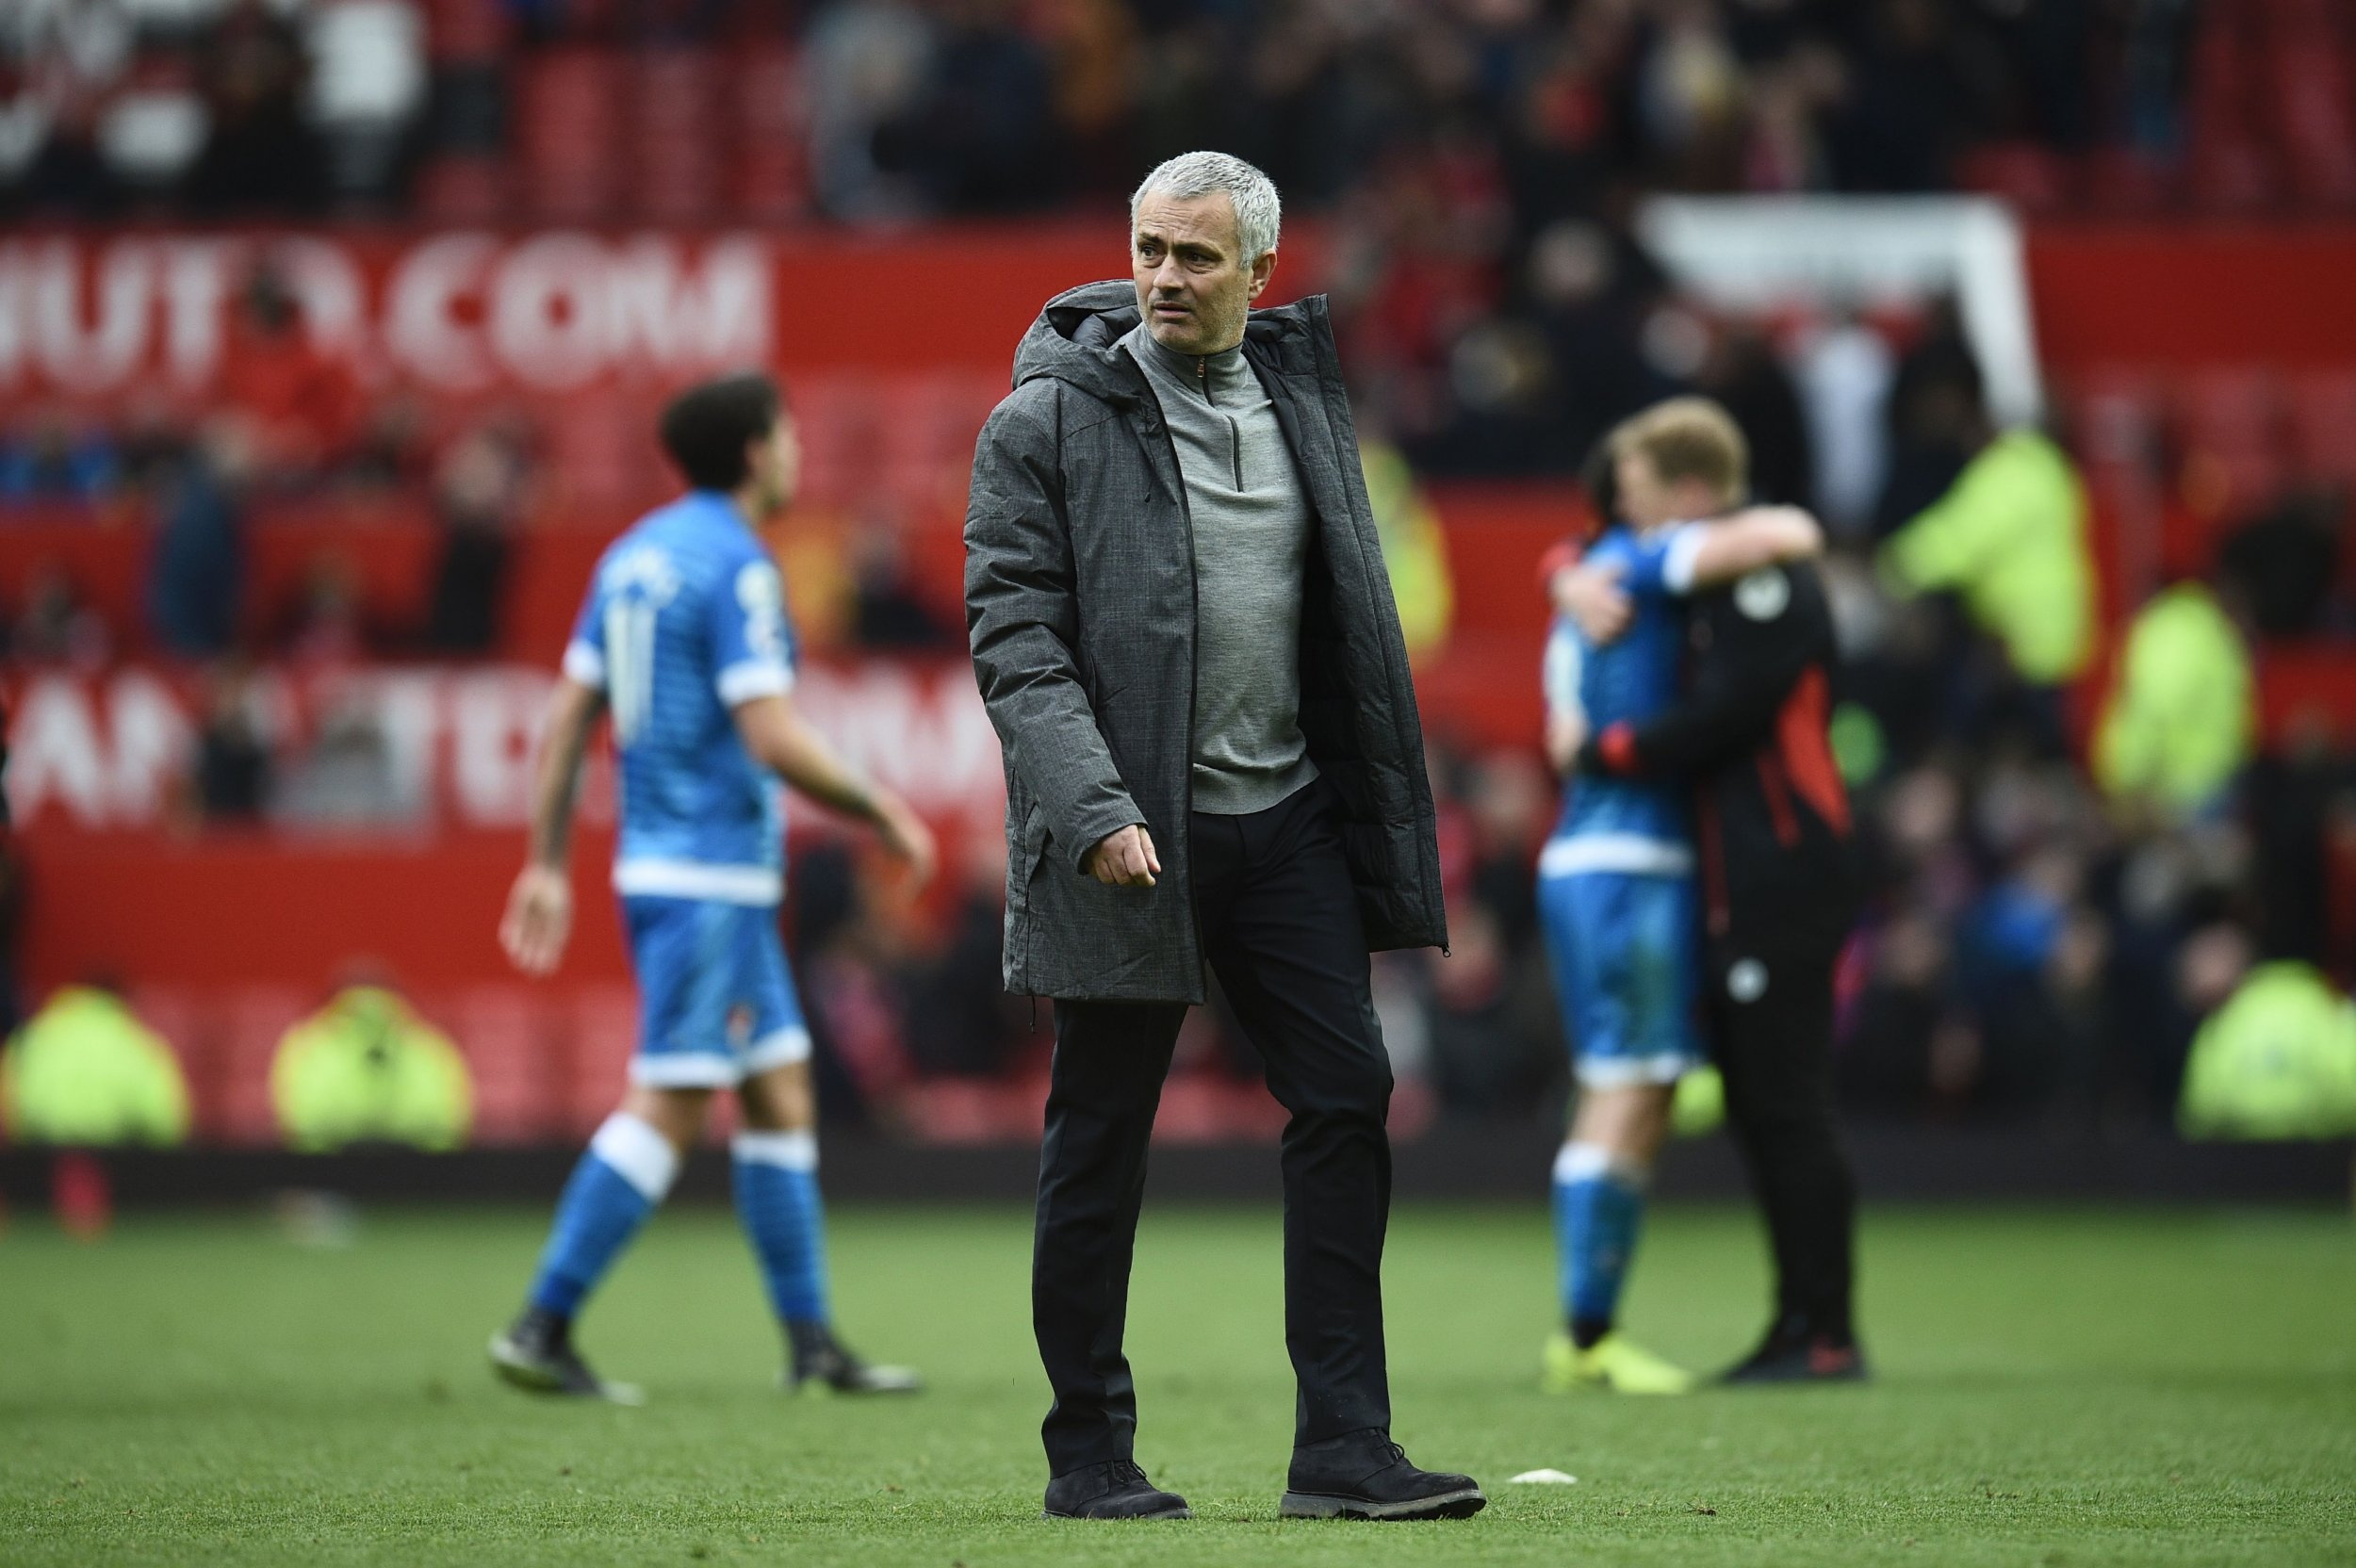 Manchester United manager Jose Mourinho at Old Trafford, Manchester, March 4.